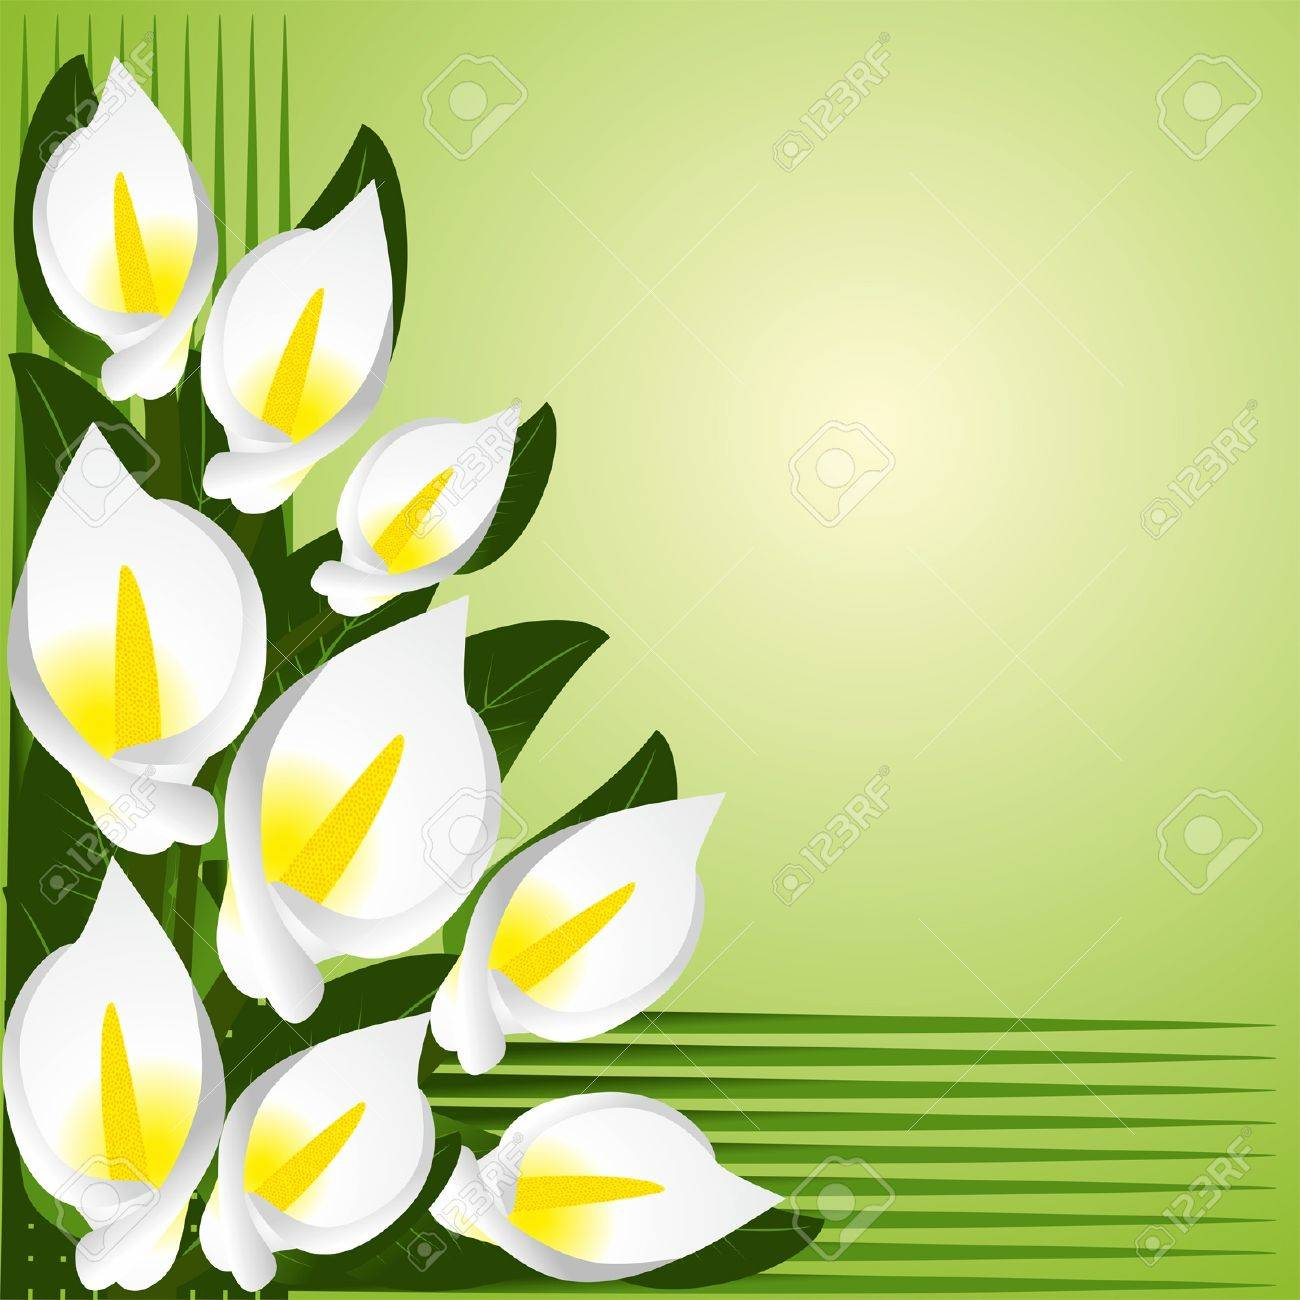 Calla lily stock photos royalty free calla lily images flower border with calla lilies illustration izmirmasajfo